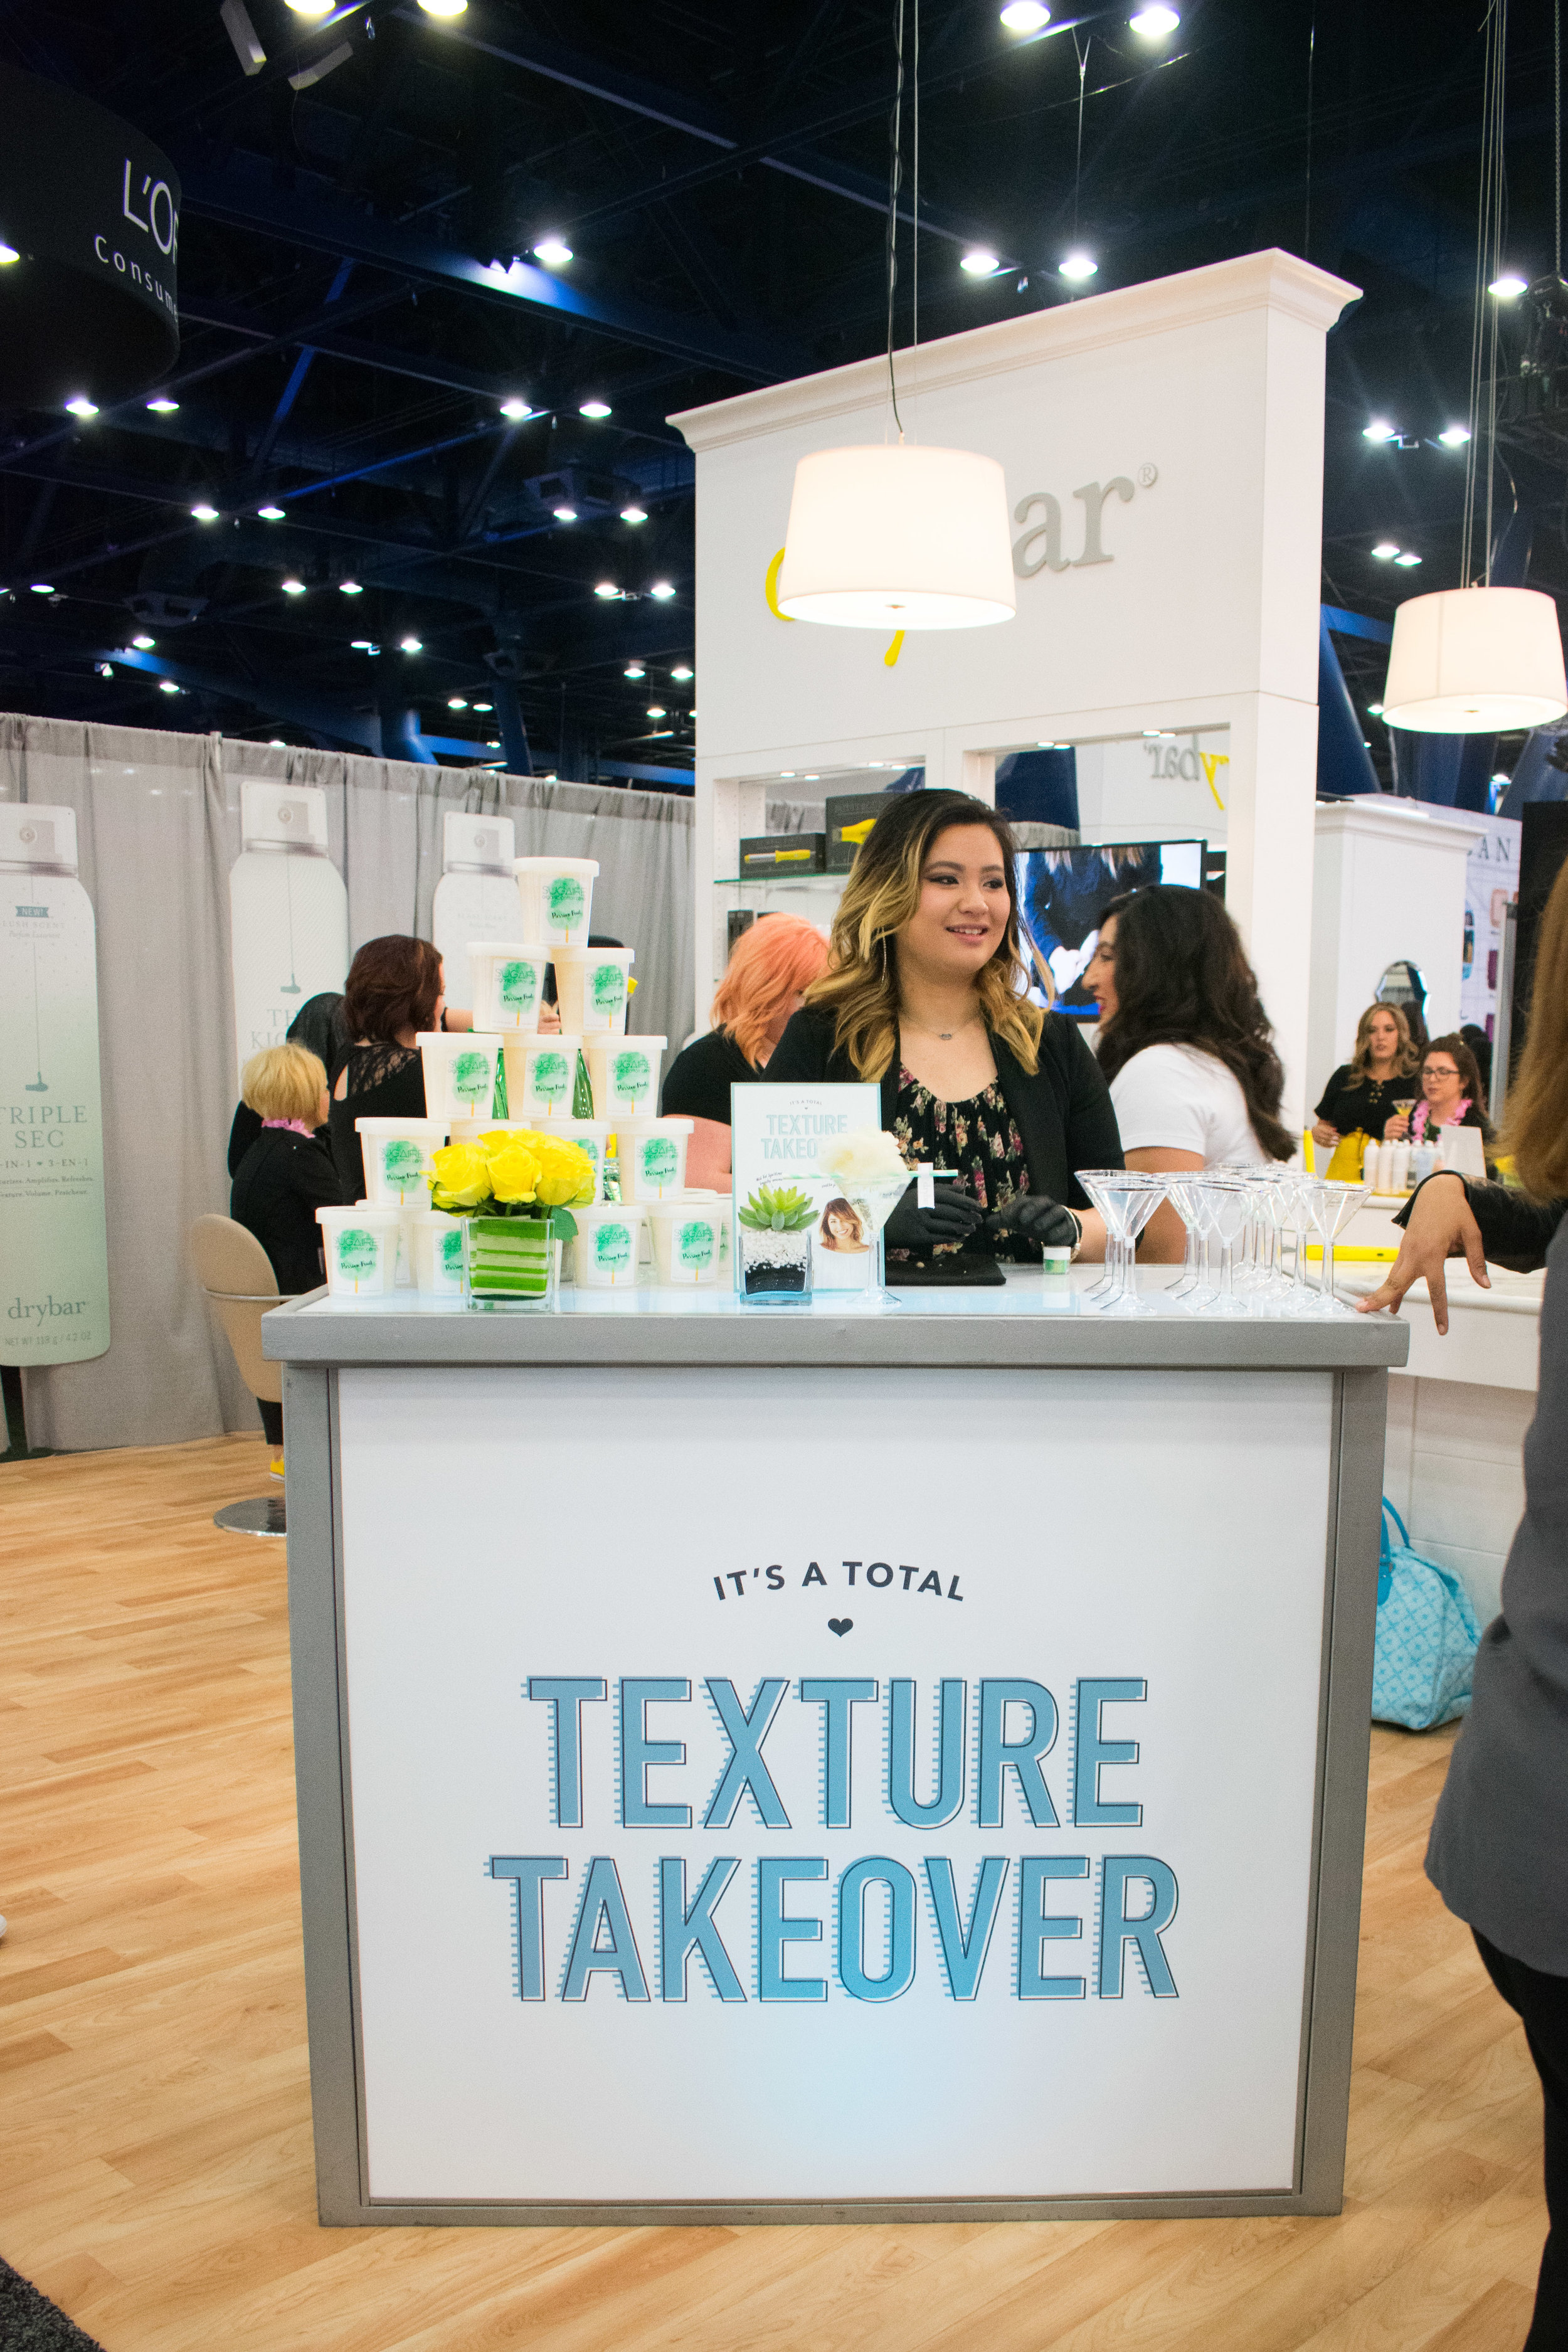 Make Your Life Sweeter Events- Drybar Ulta cONVENTION 2018